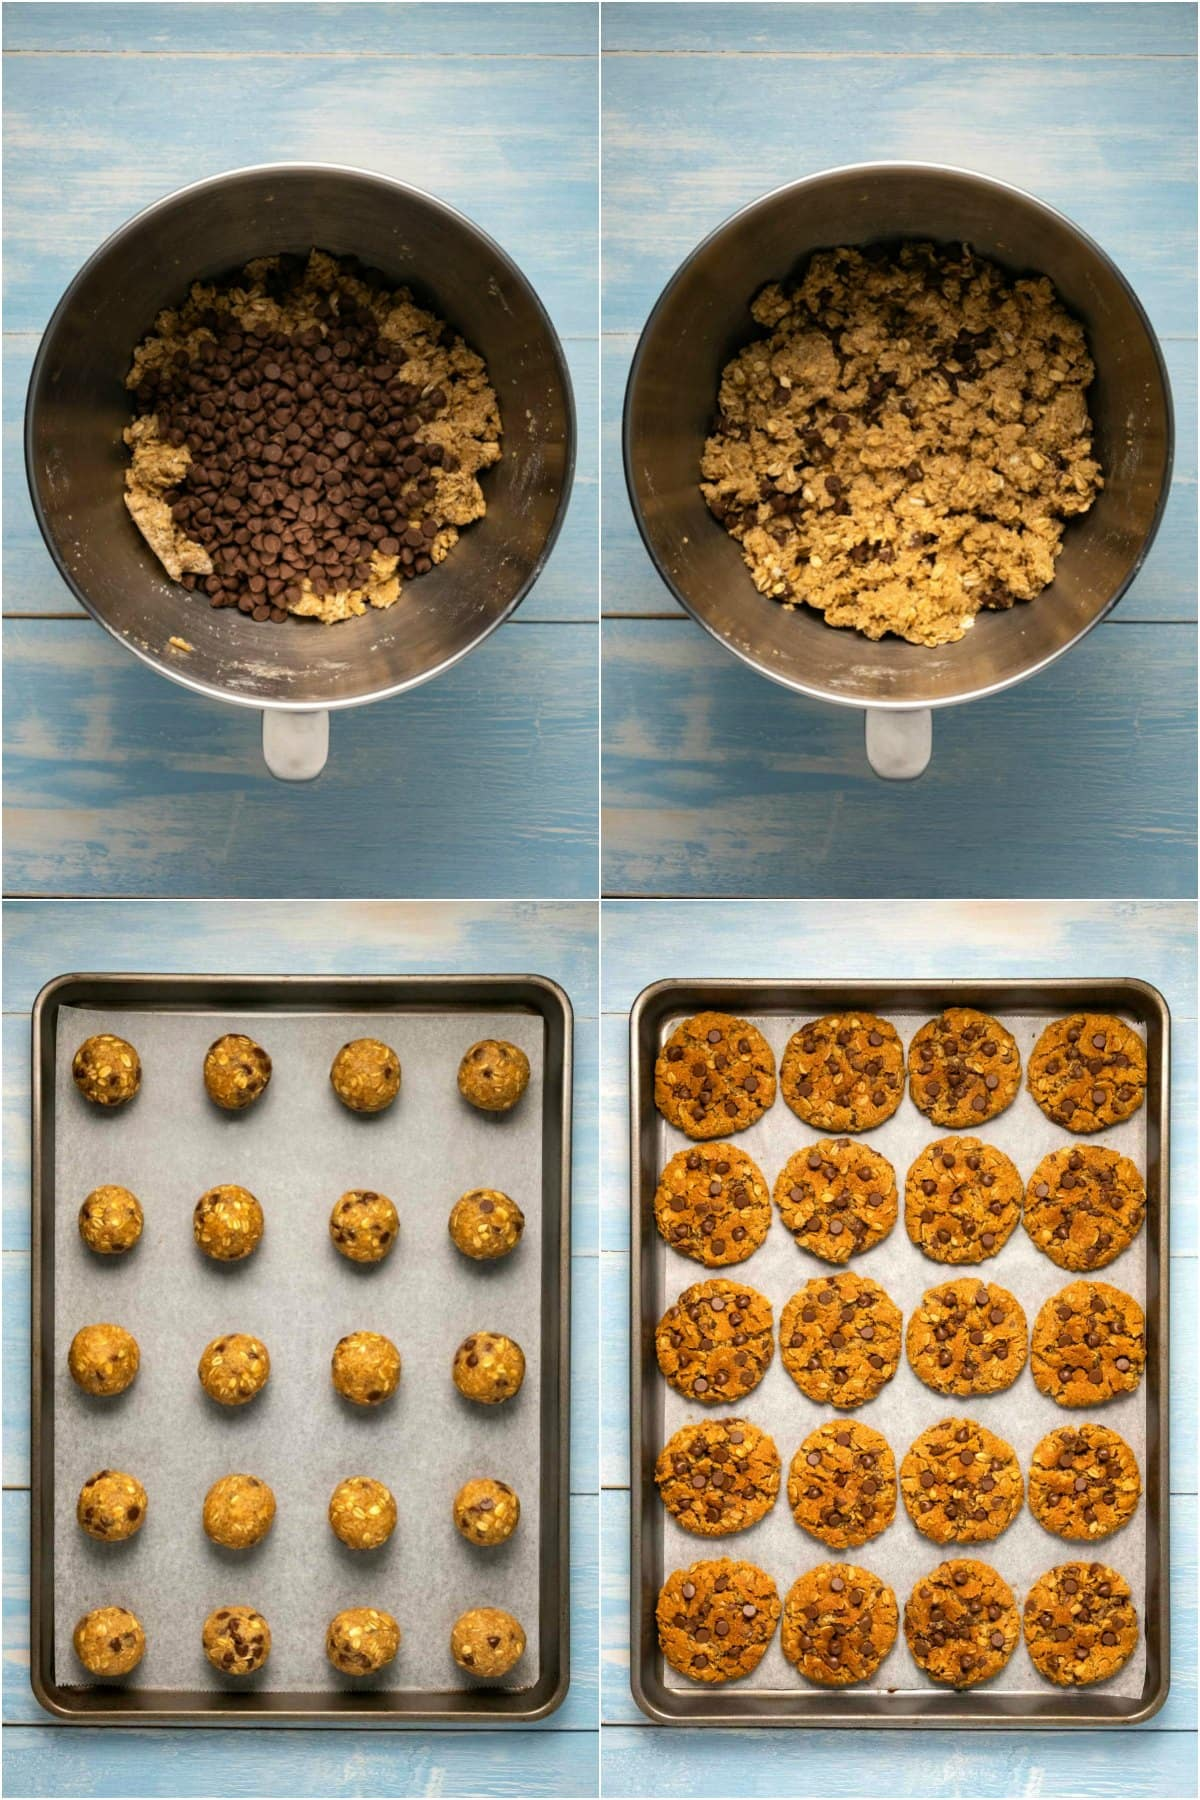 Step by step process photo collage of making oatmeal chocolate chip cookies.